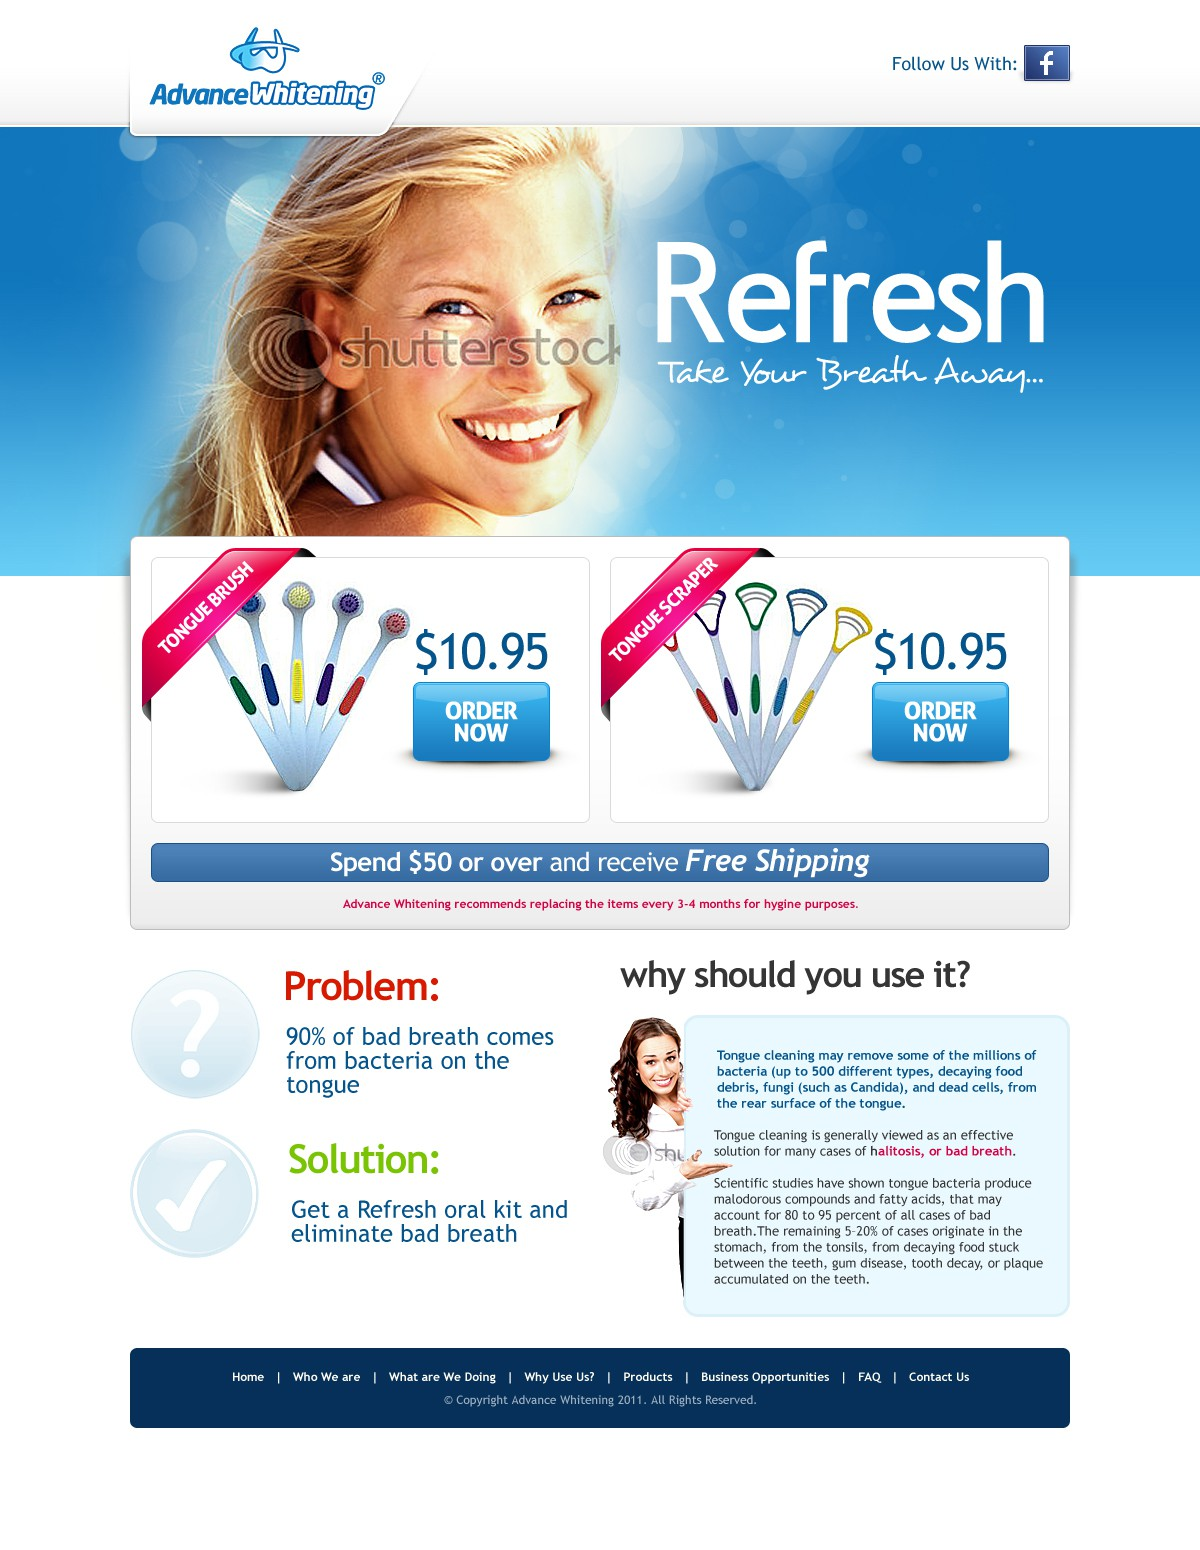 New website design wanted for Advance Whitening